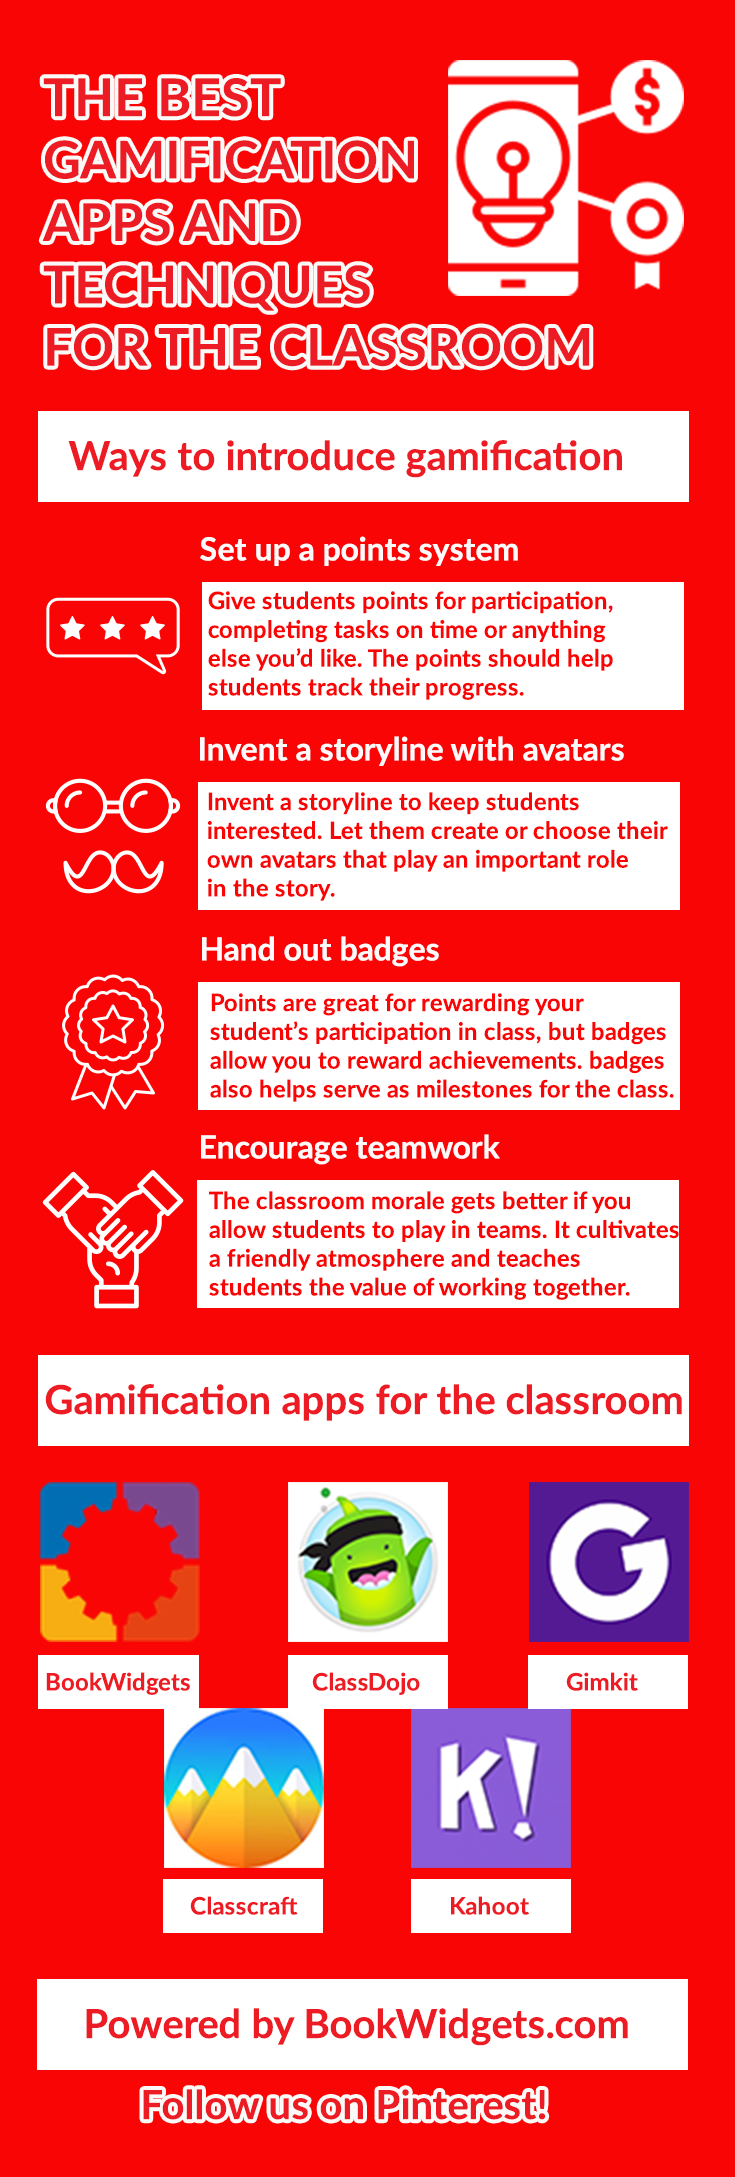 Gamification apps and techniques for education